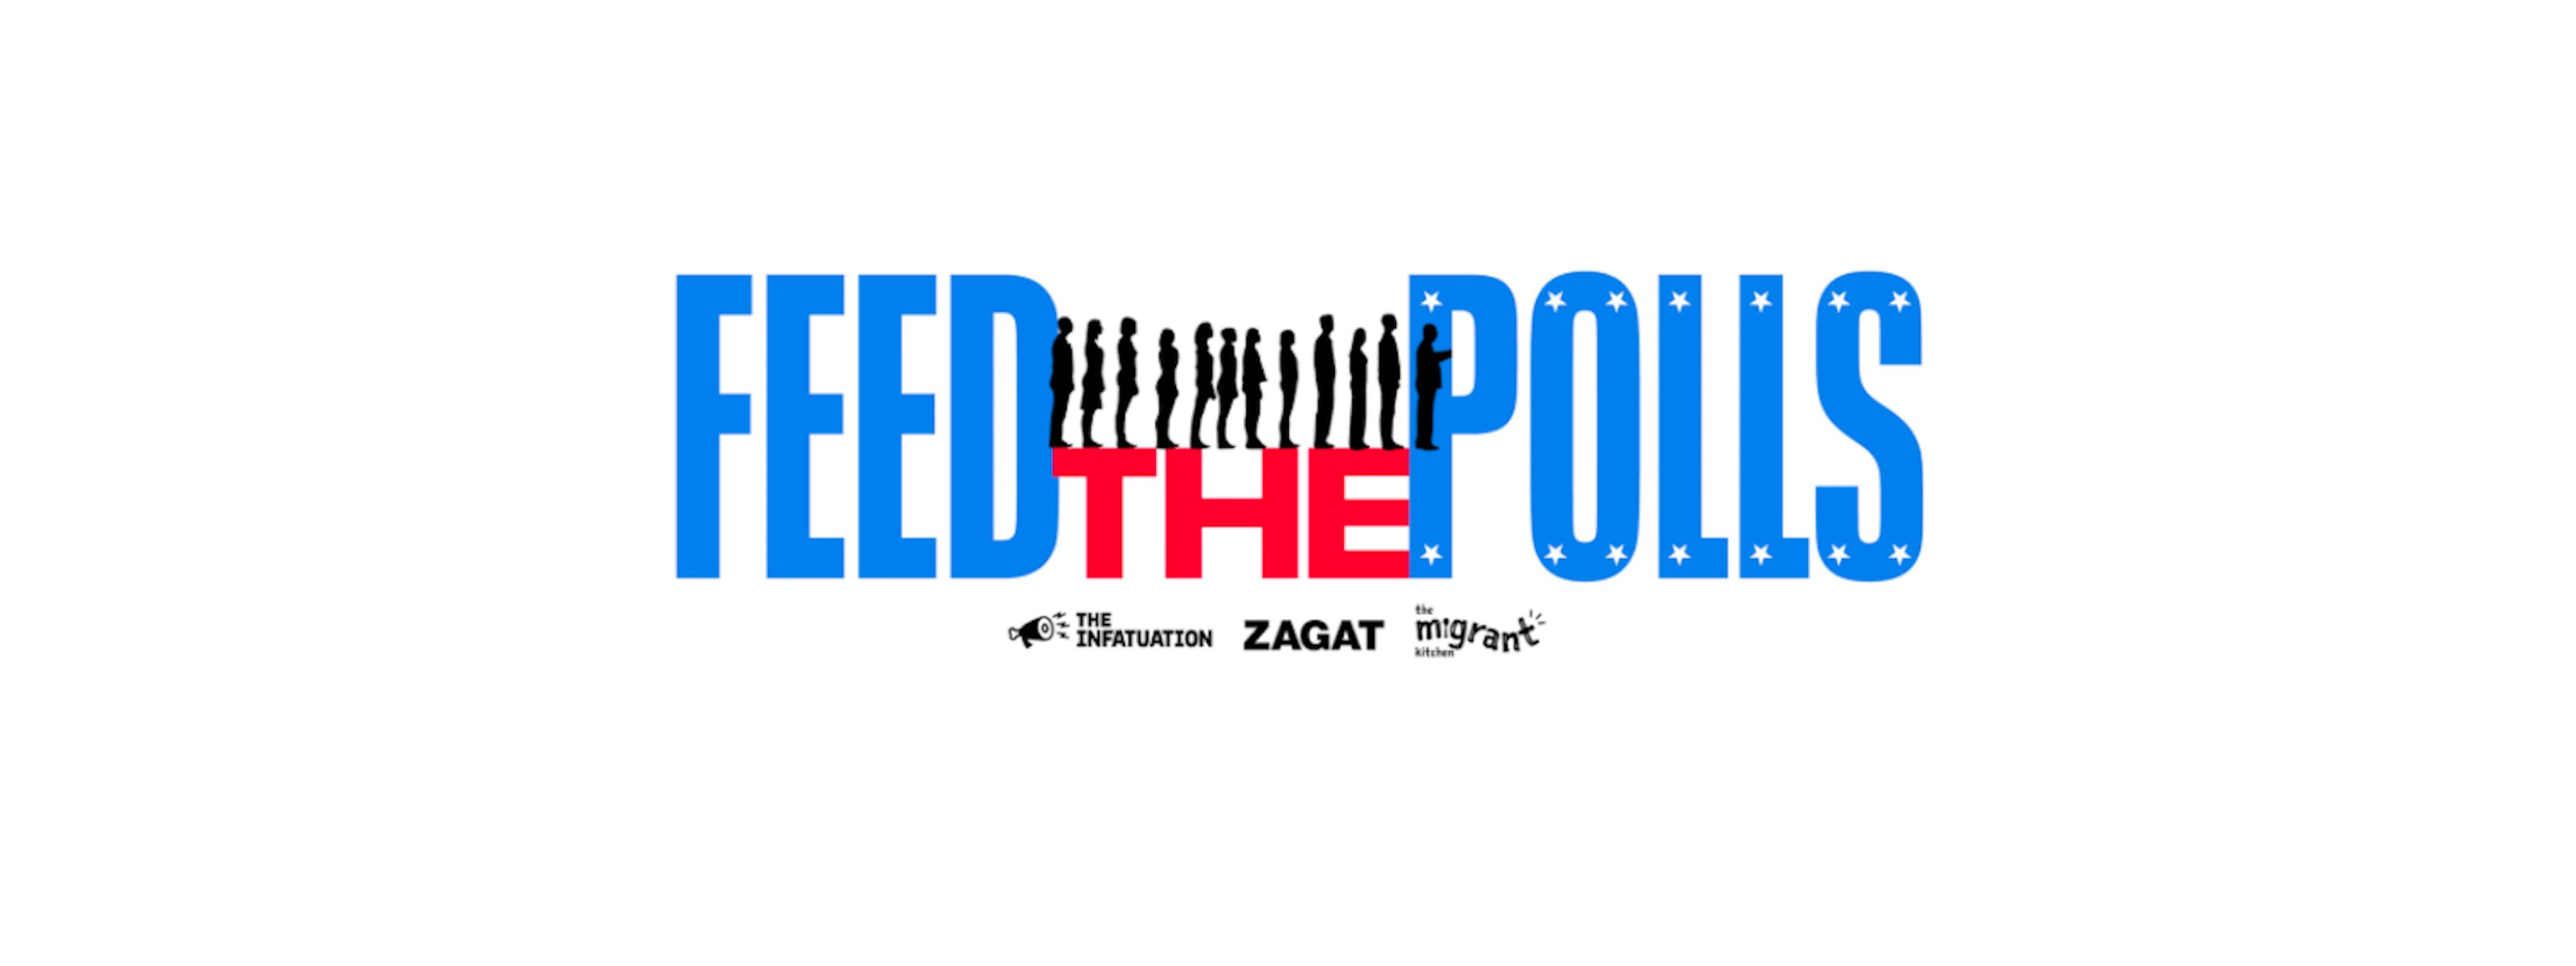 Feed The Polls: We're Almost There - The Infatuation